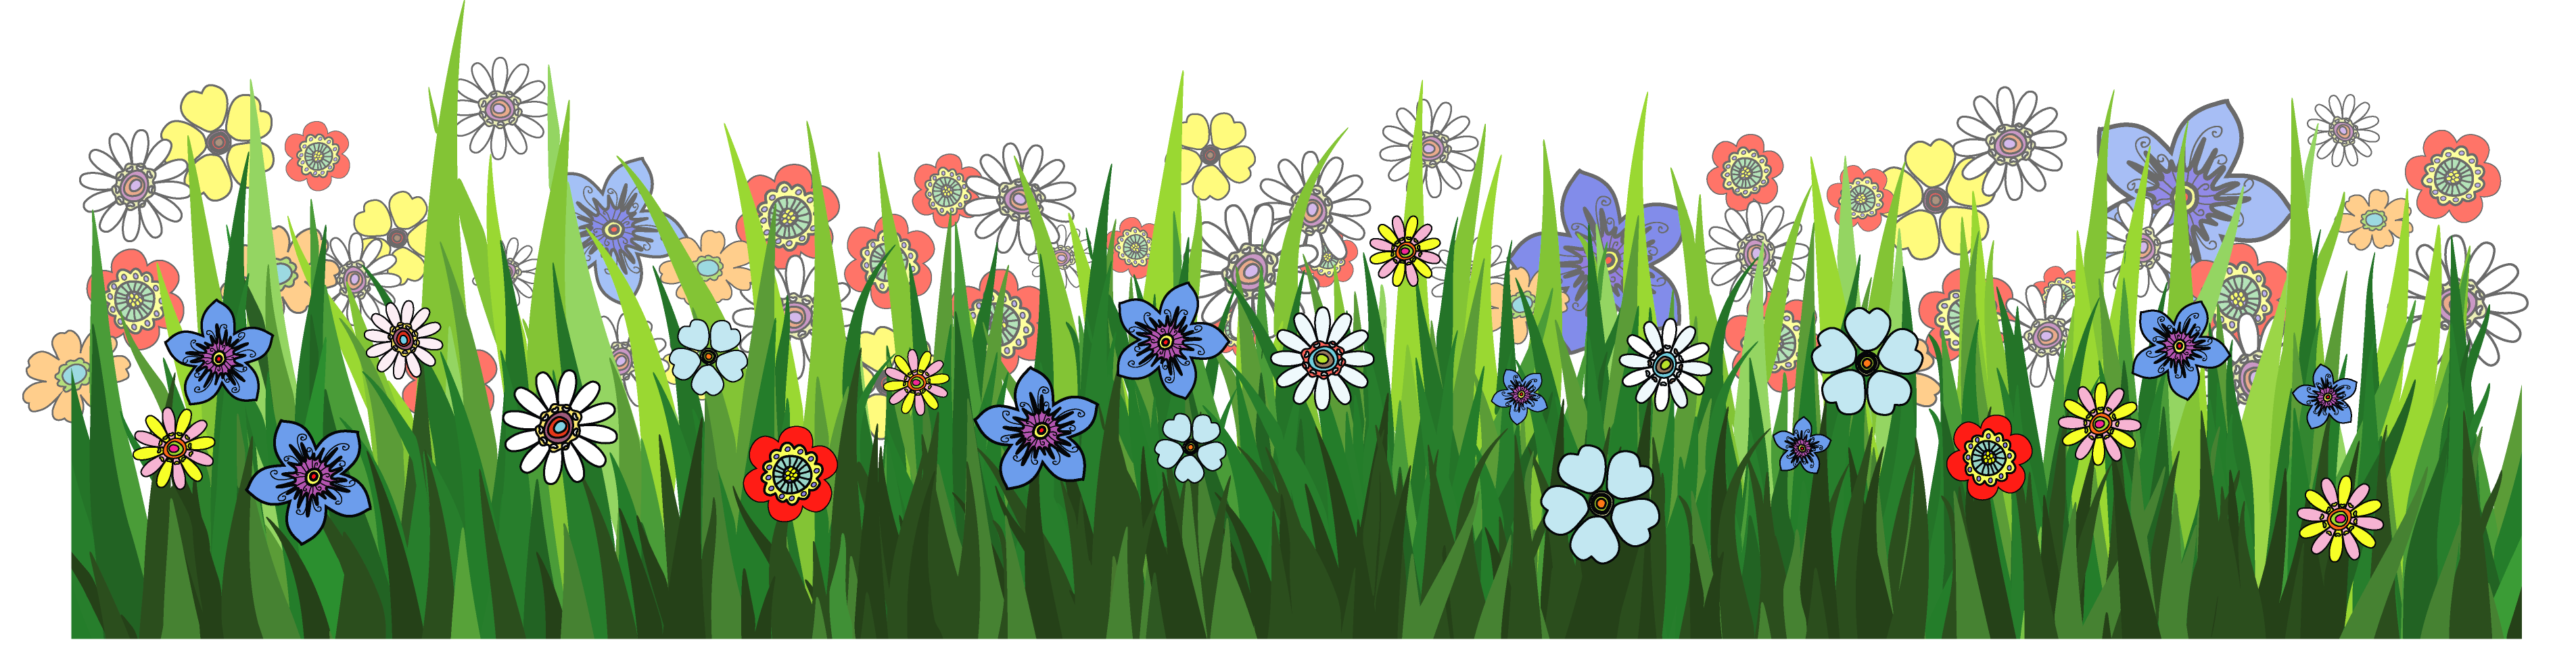 Grass cartoon png. Ground with flowers picture